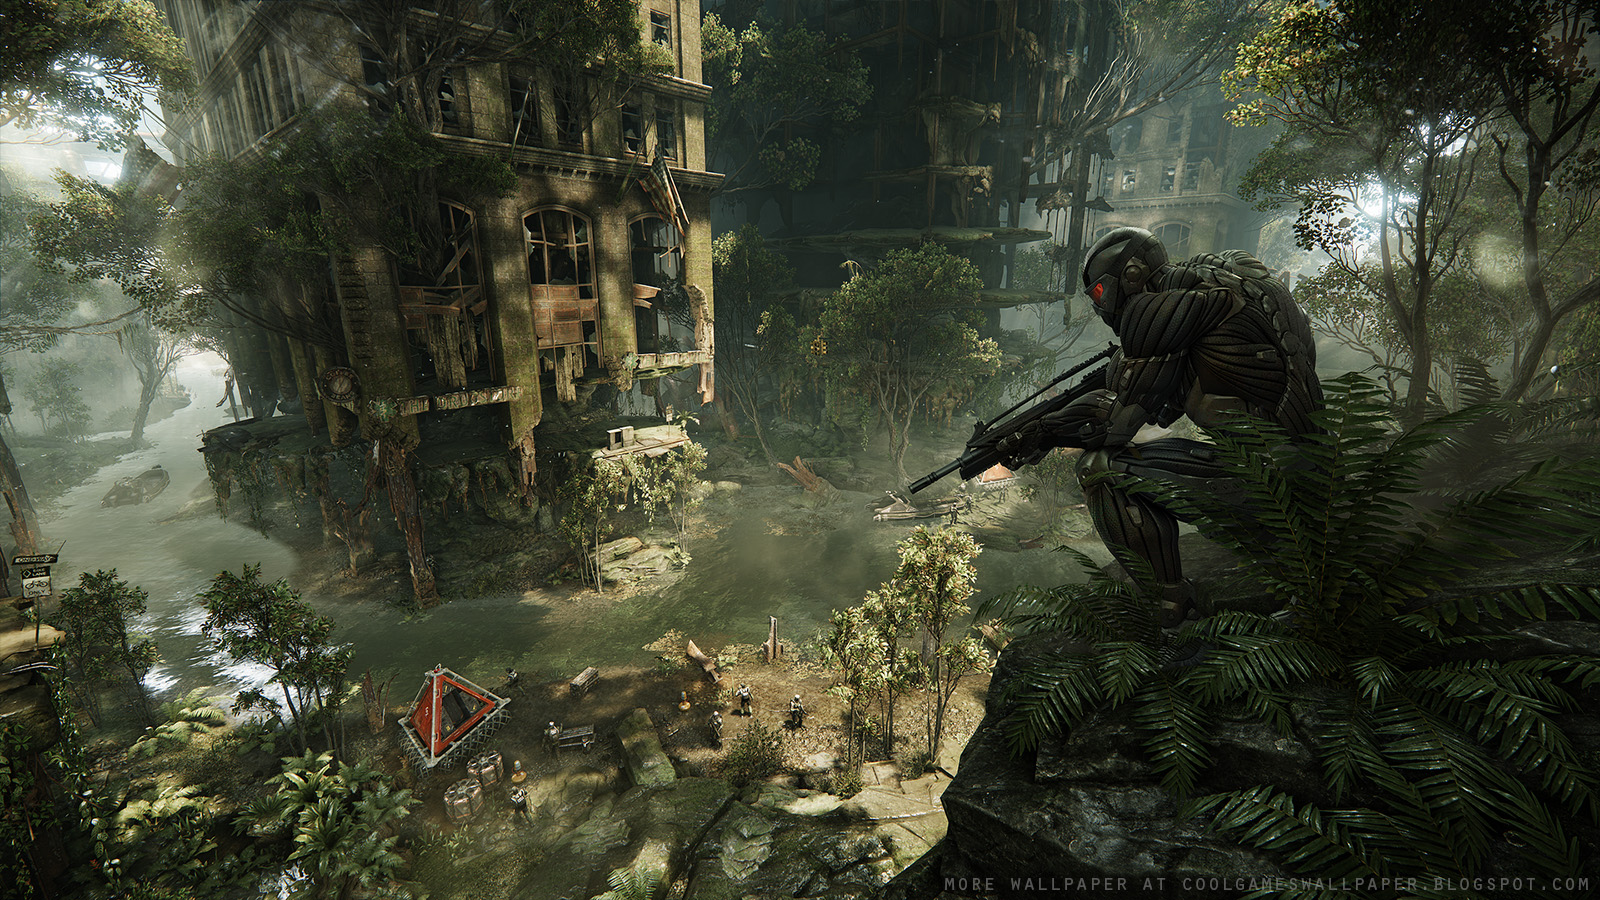 crysis 4 wallpaper hd-#14